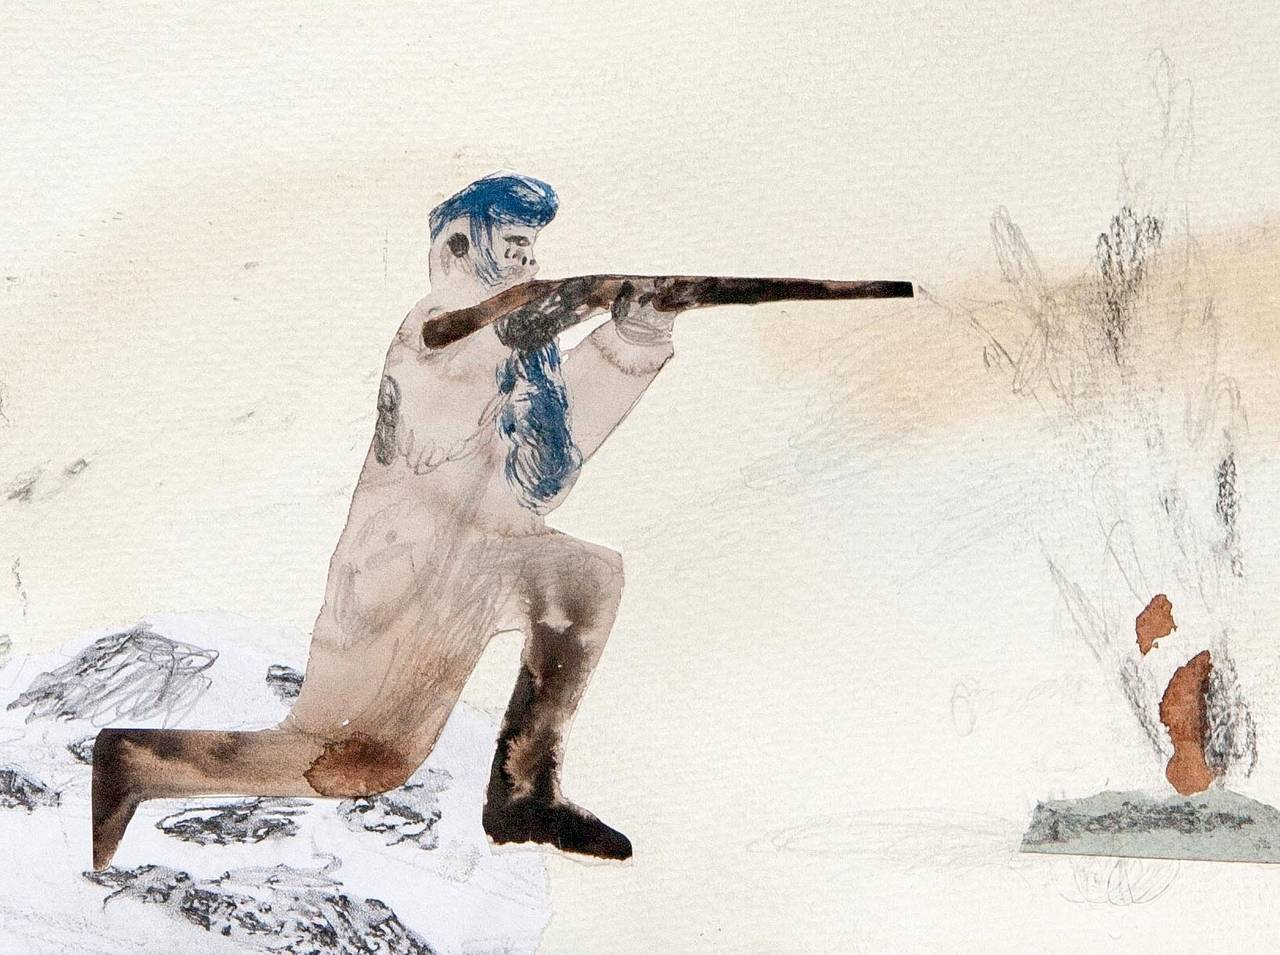 Fruitless Hunting - Contemporary Art by Guðmundur Thoroddsen